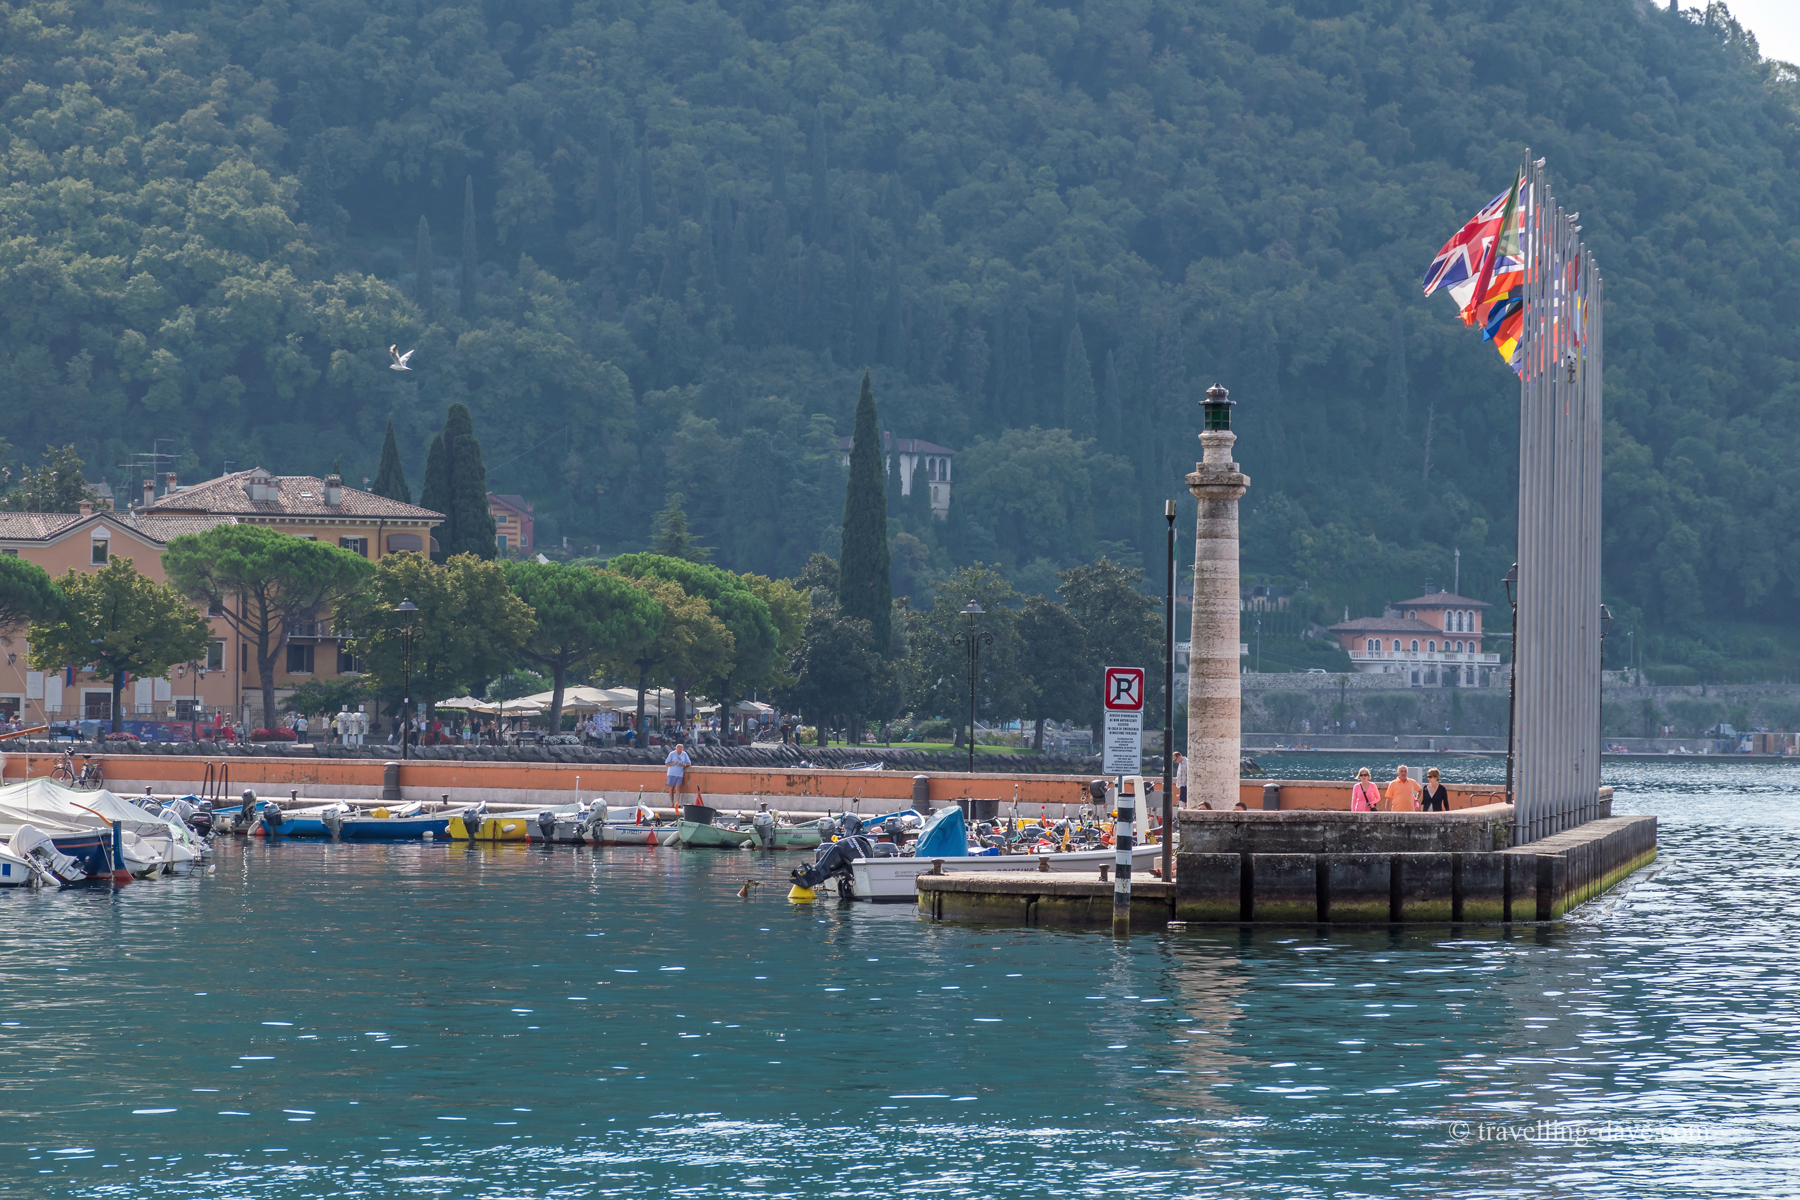 View of the lighthouse at Garda's harbour in Italy